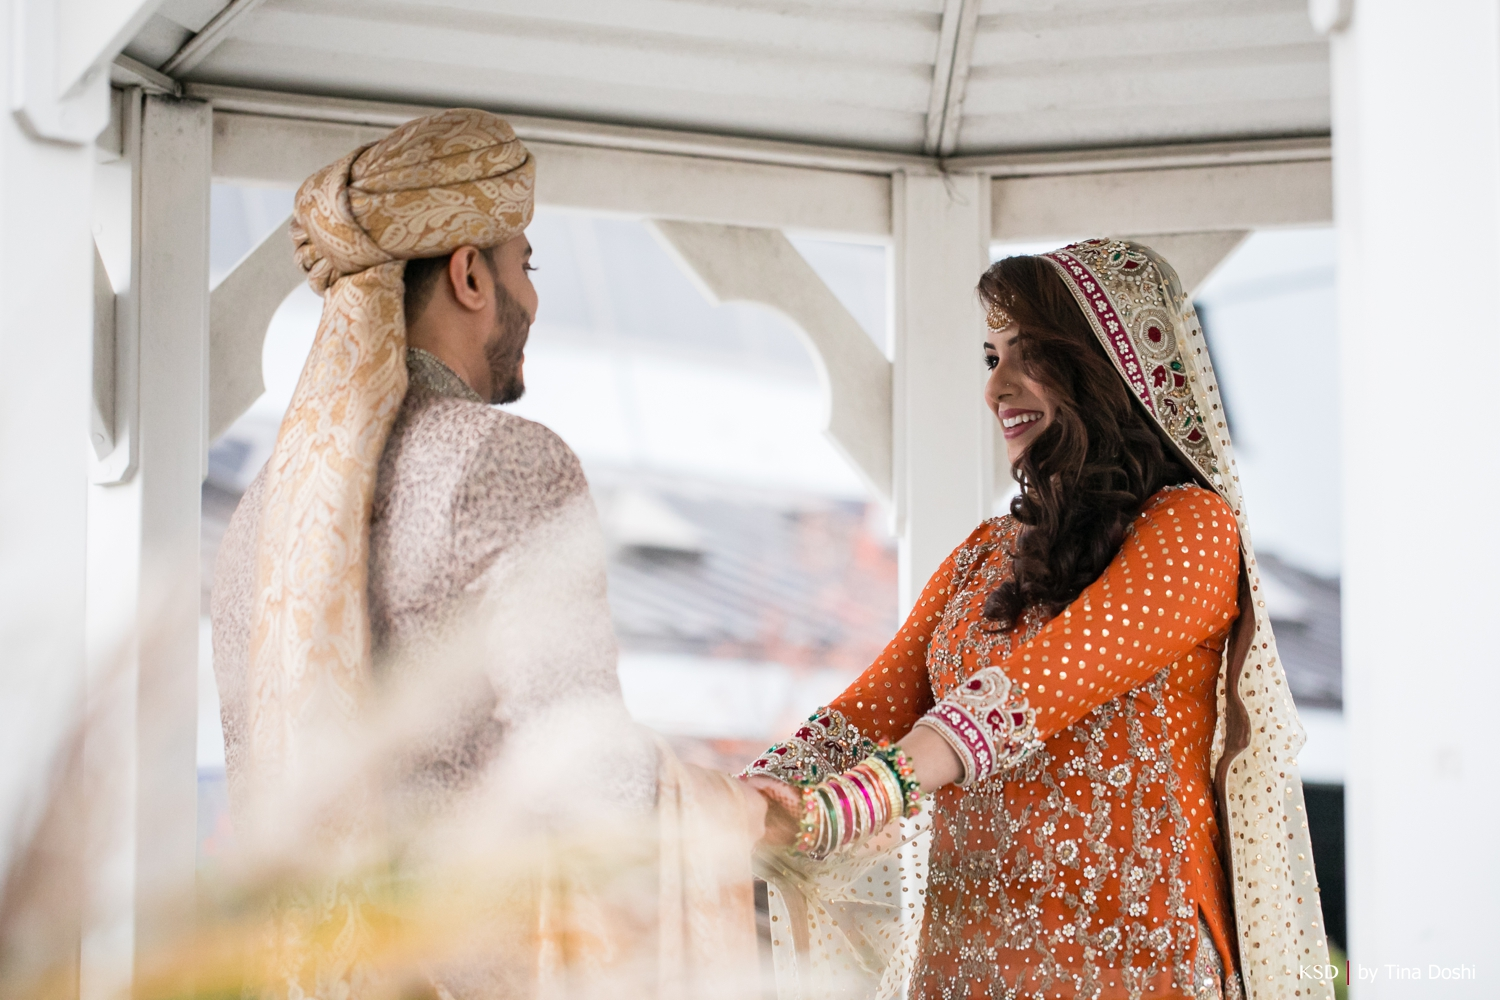 nj_south_asian_wedding_0019